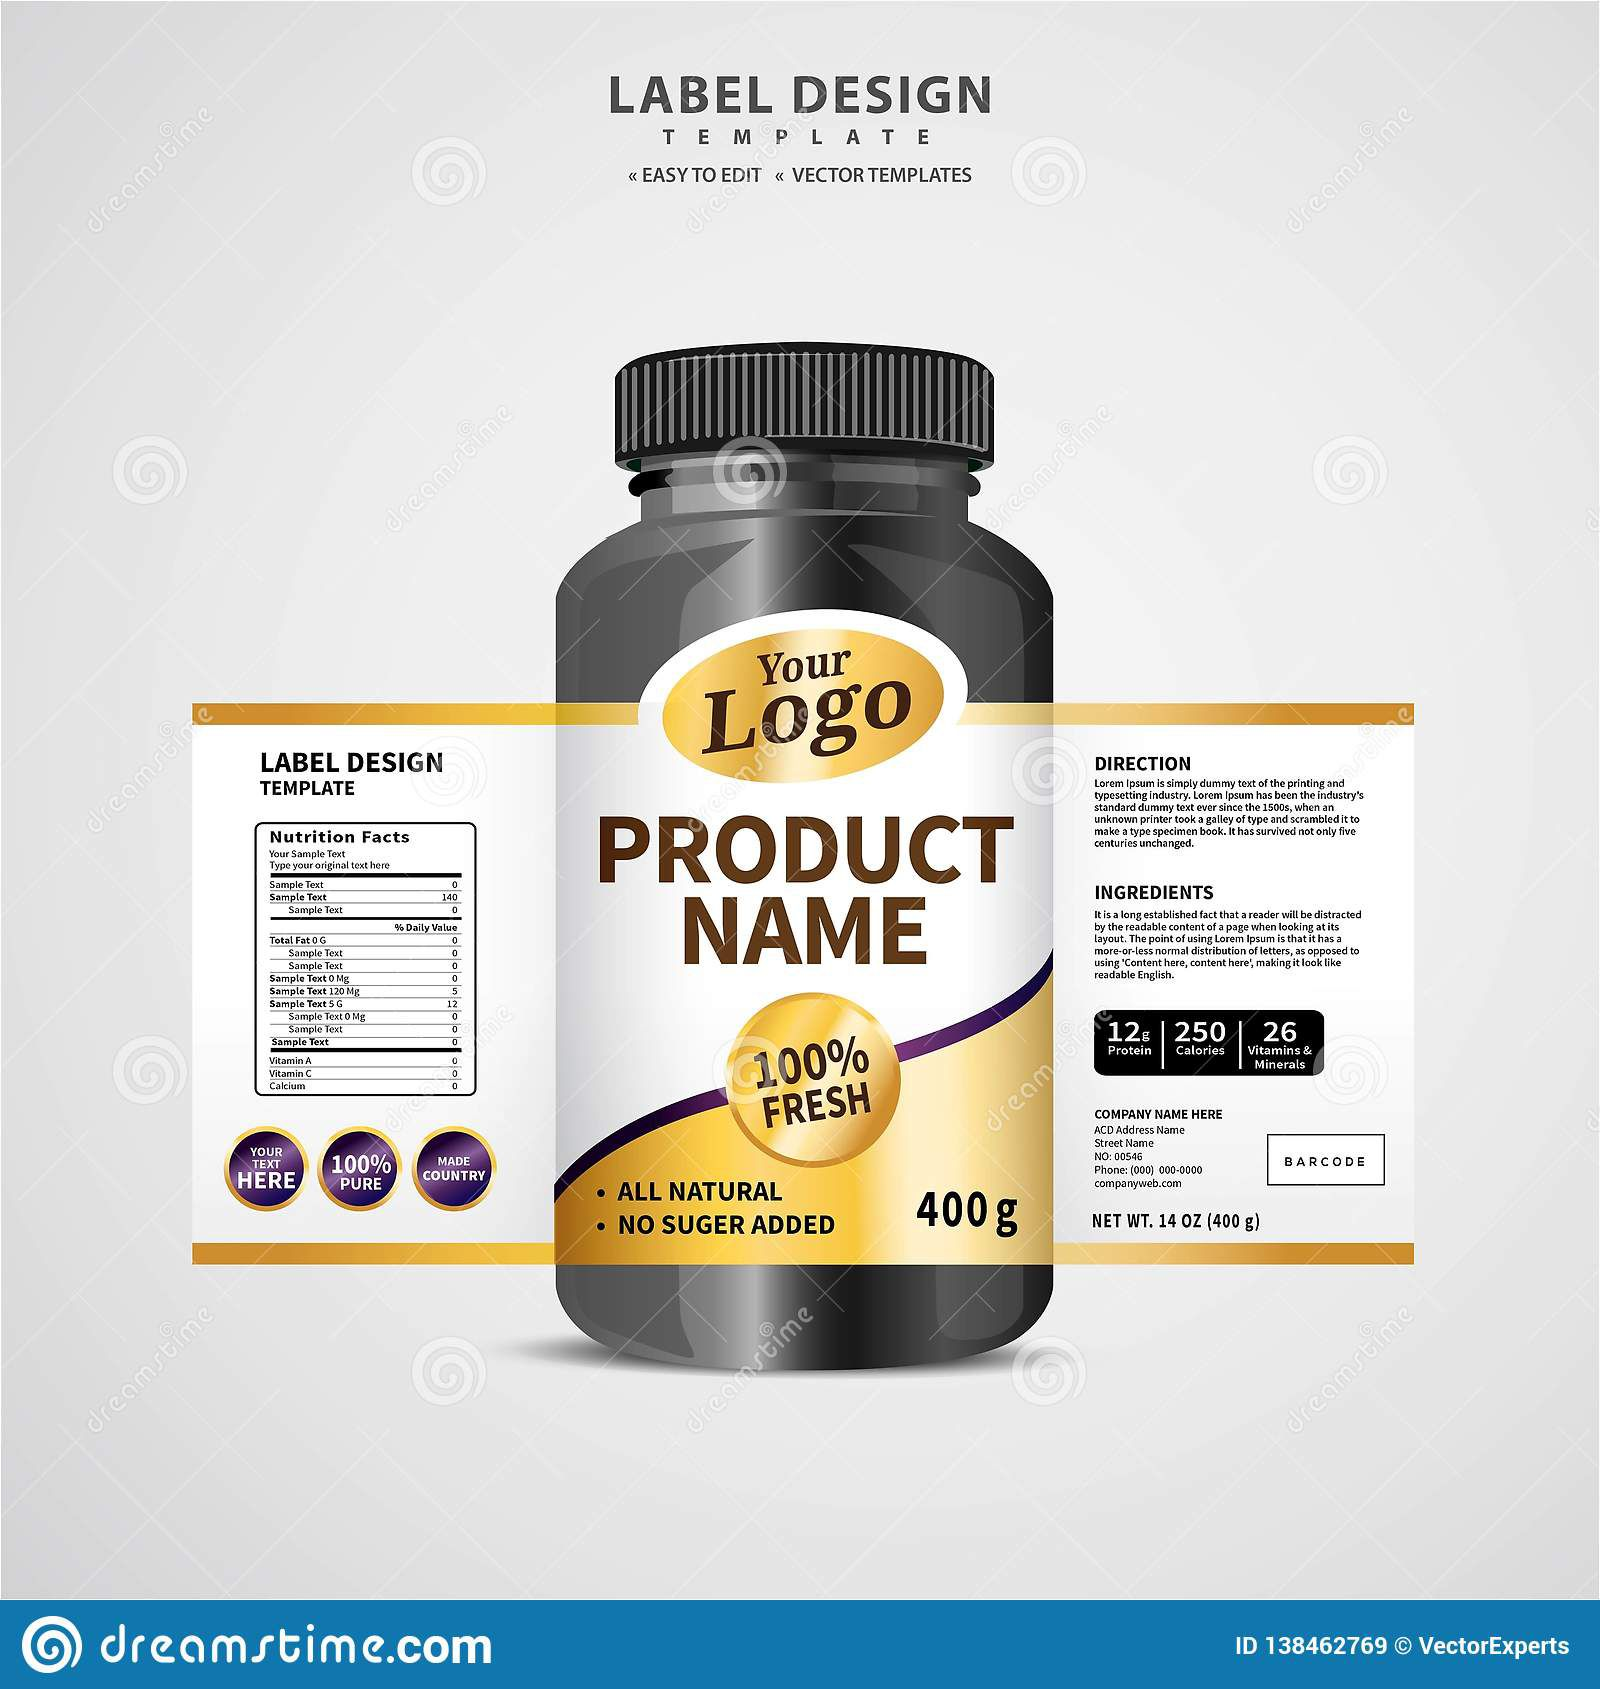 005 Unusual Free Food Label Design Template Example  Templates DownloadFull